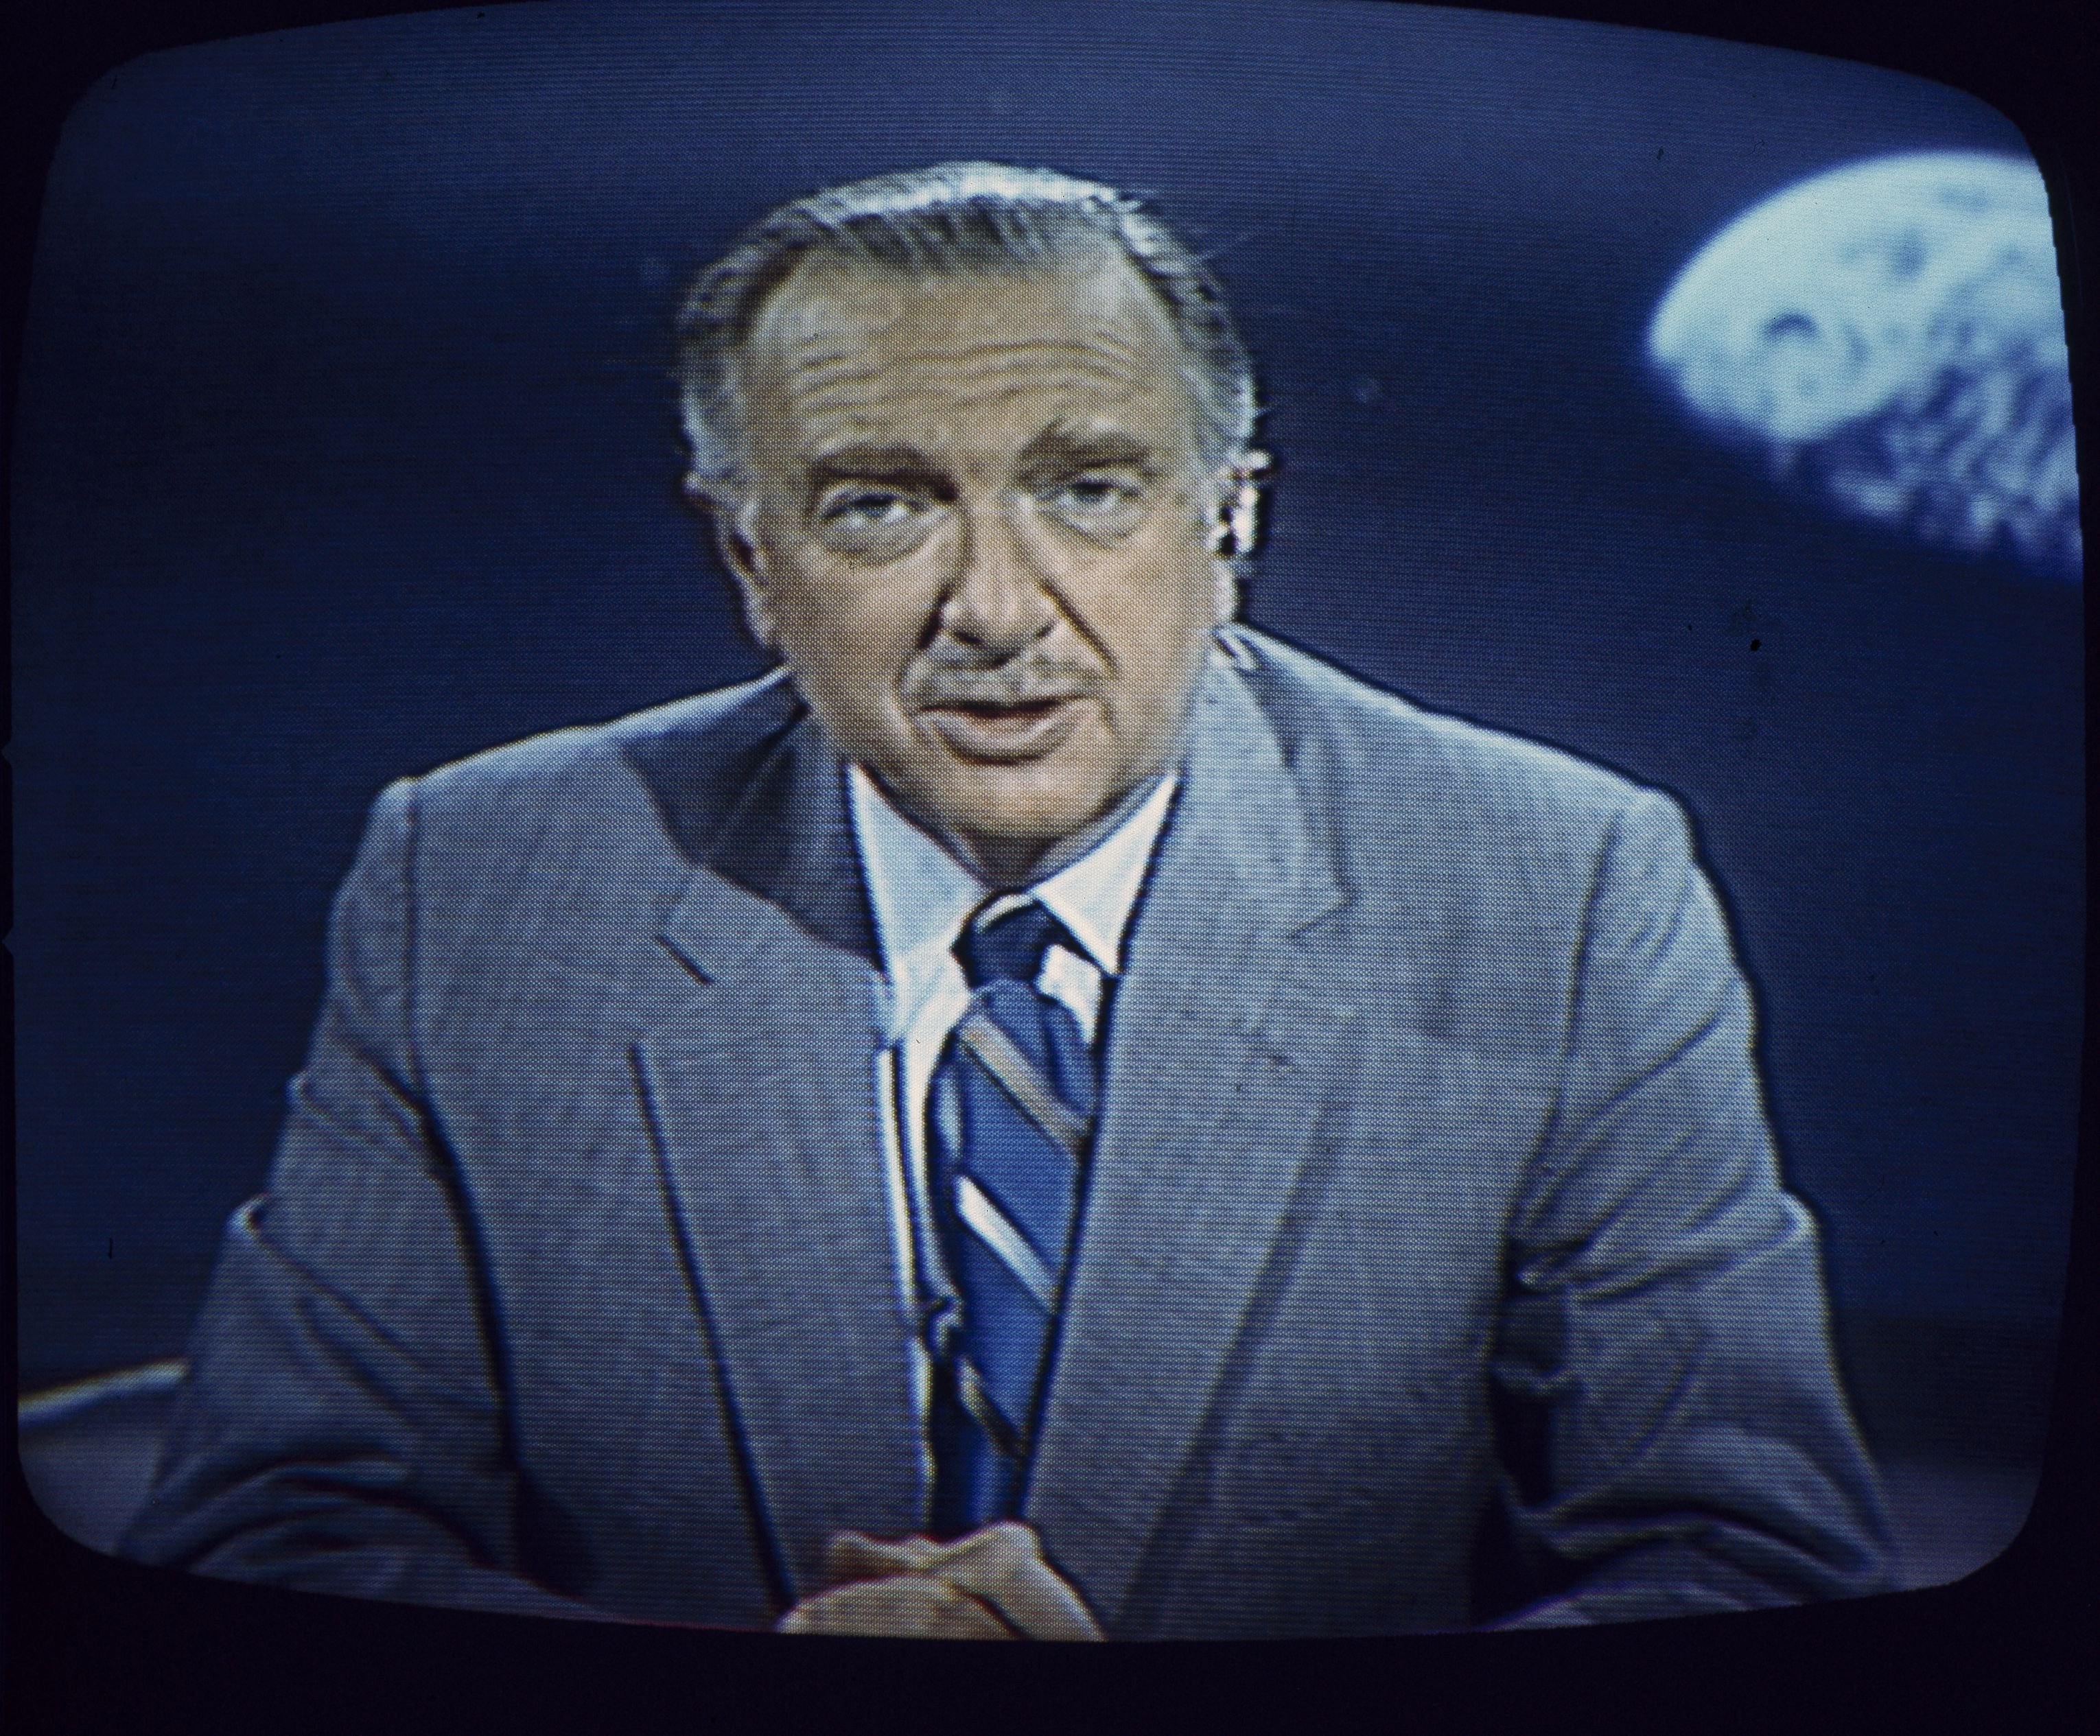 Remembering Walter Cronkite's words on the day of the Apollo 11 moon landing